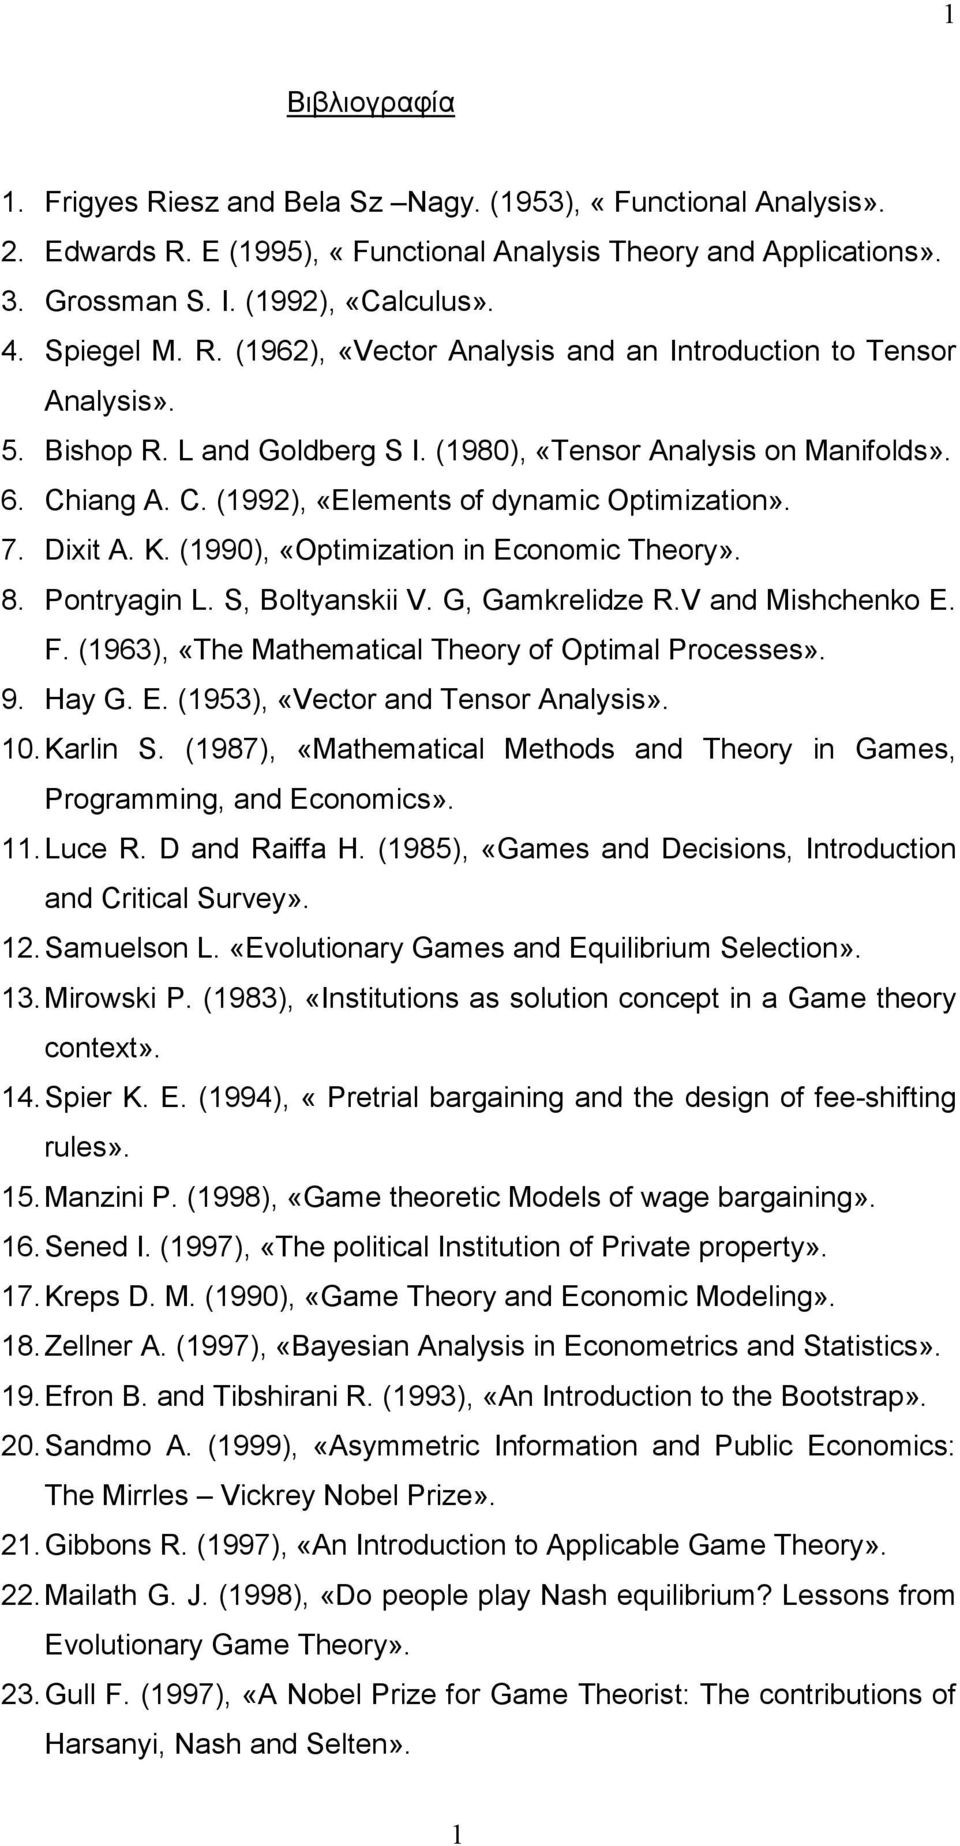 iang A. C. (1992), «Elements of dynamic Optimization». 7. Dixit A. K. (1990), «Optimization in Economic Theory». 8. Pontryagin L. S, Boltyanskii V. G, Gamkrelidze R.V and Mishchenko E. F.